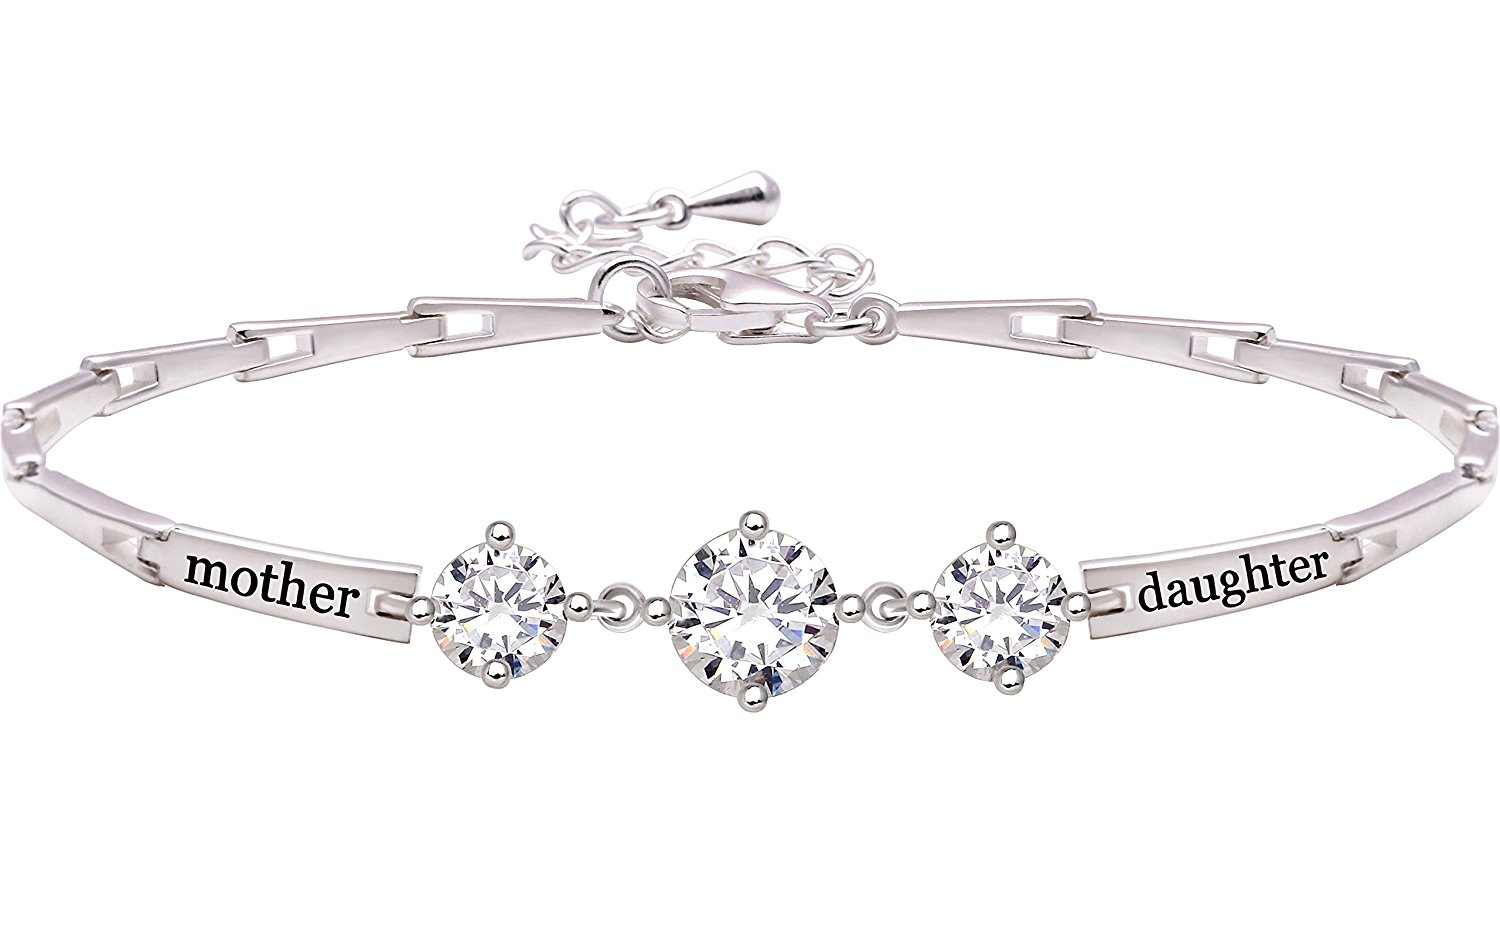 ALOV Jewelry Sterling Silver 'mother daughter' Cubic Zirconia Bracelet